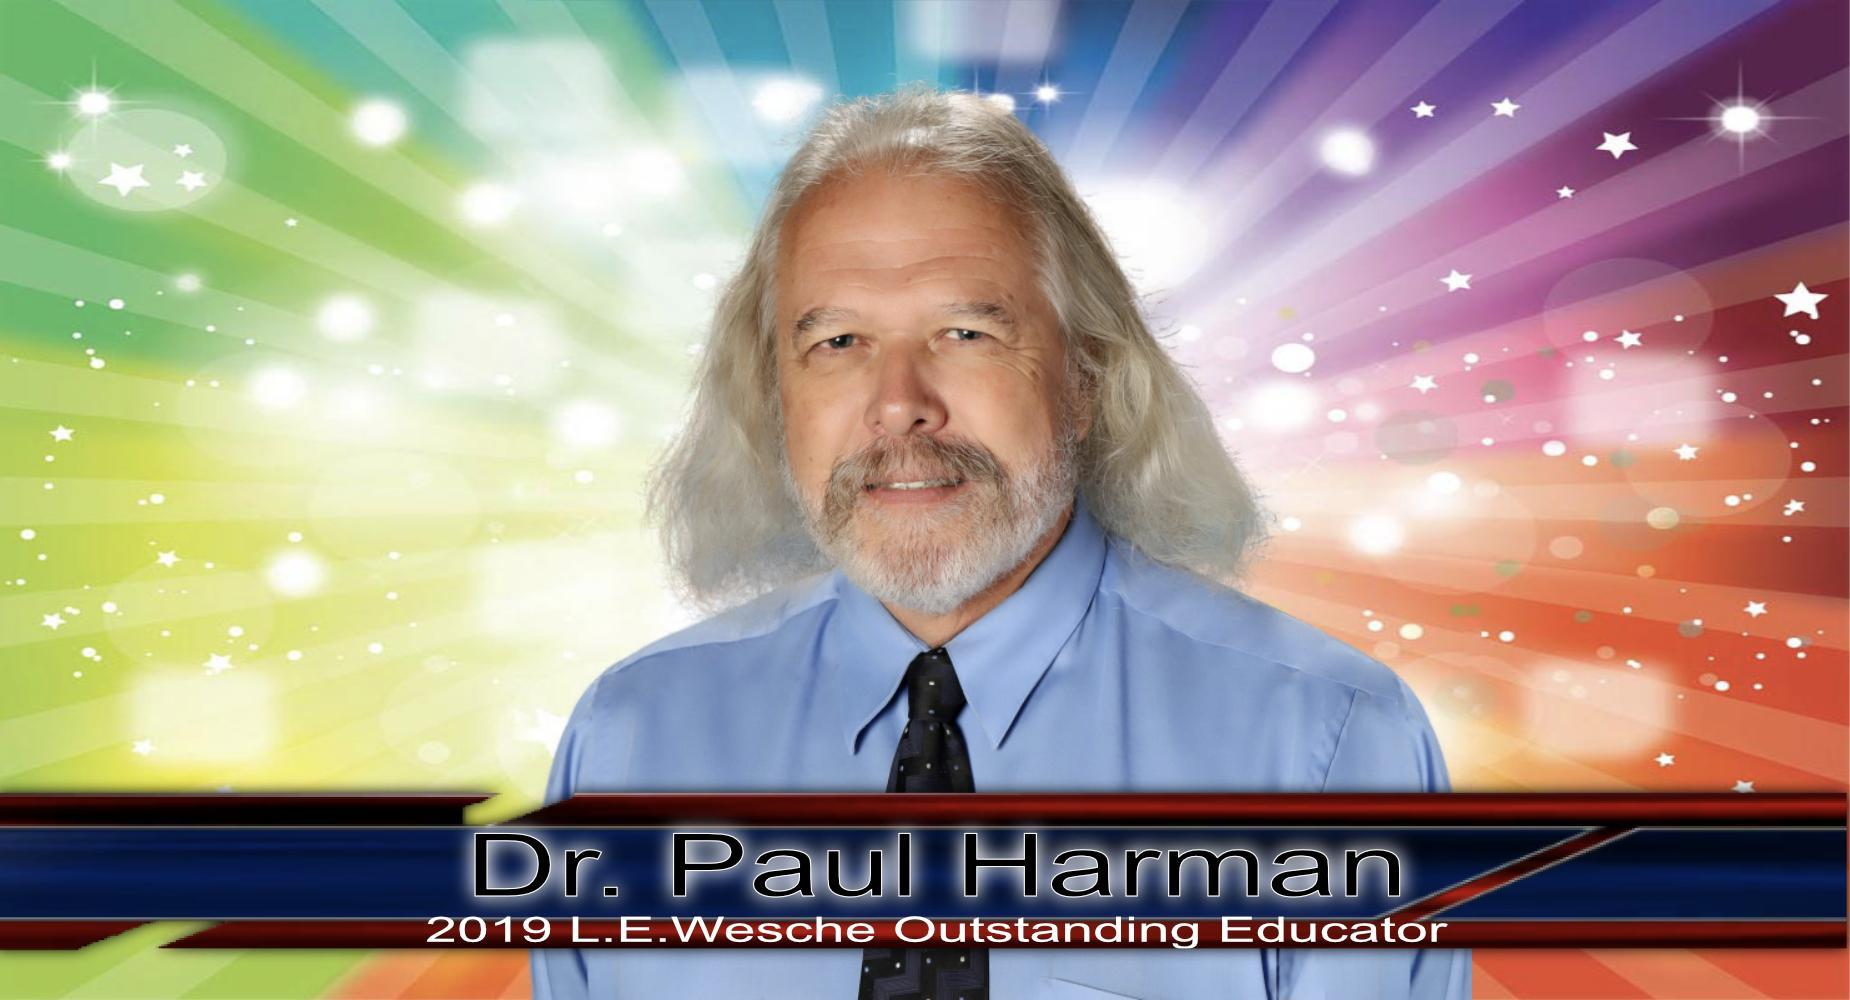 Harman, Paul_2019 Outstanding Educator